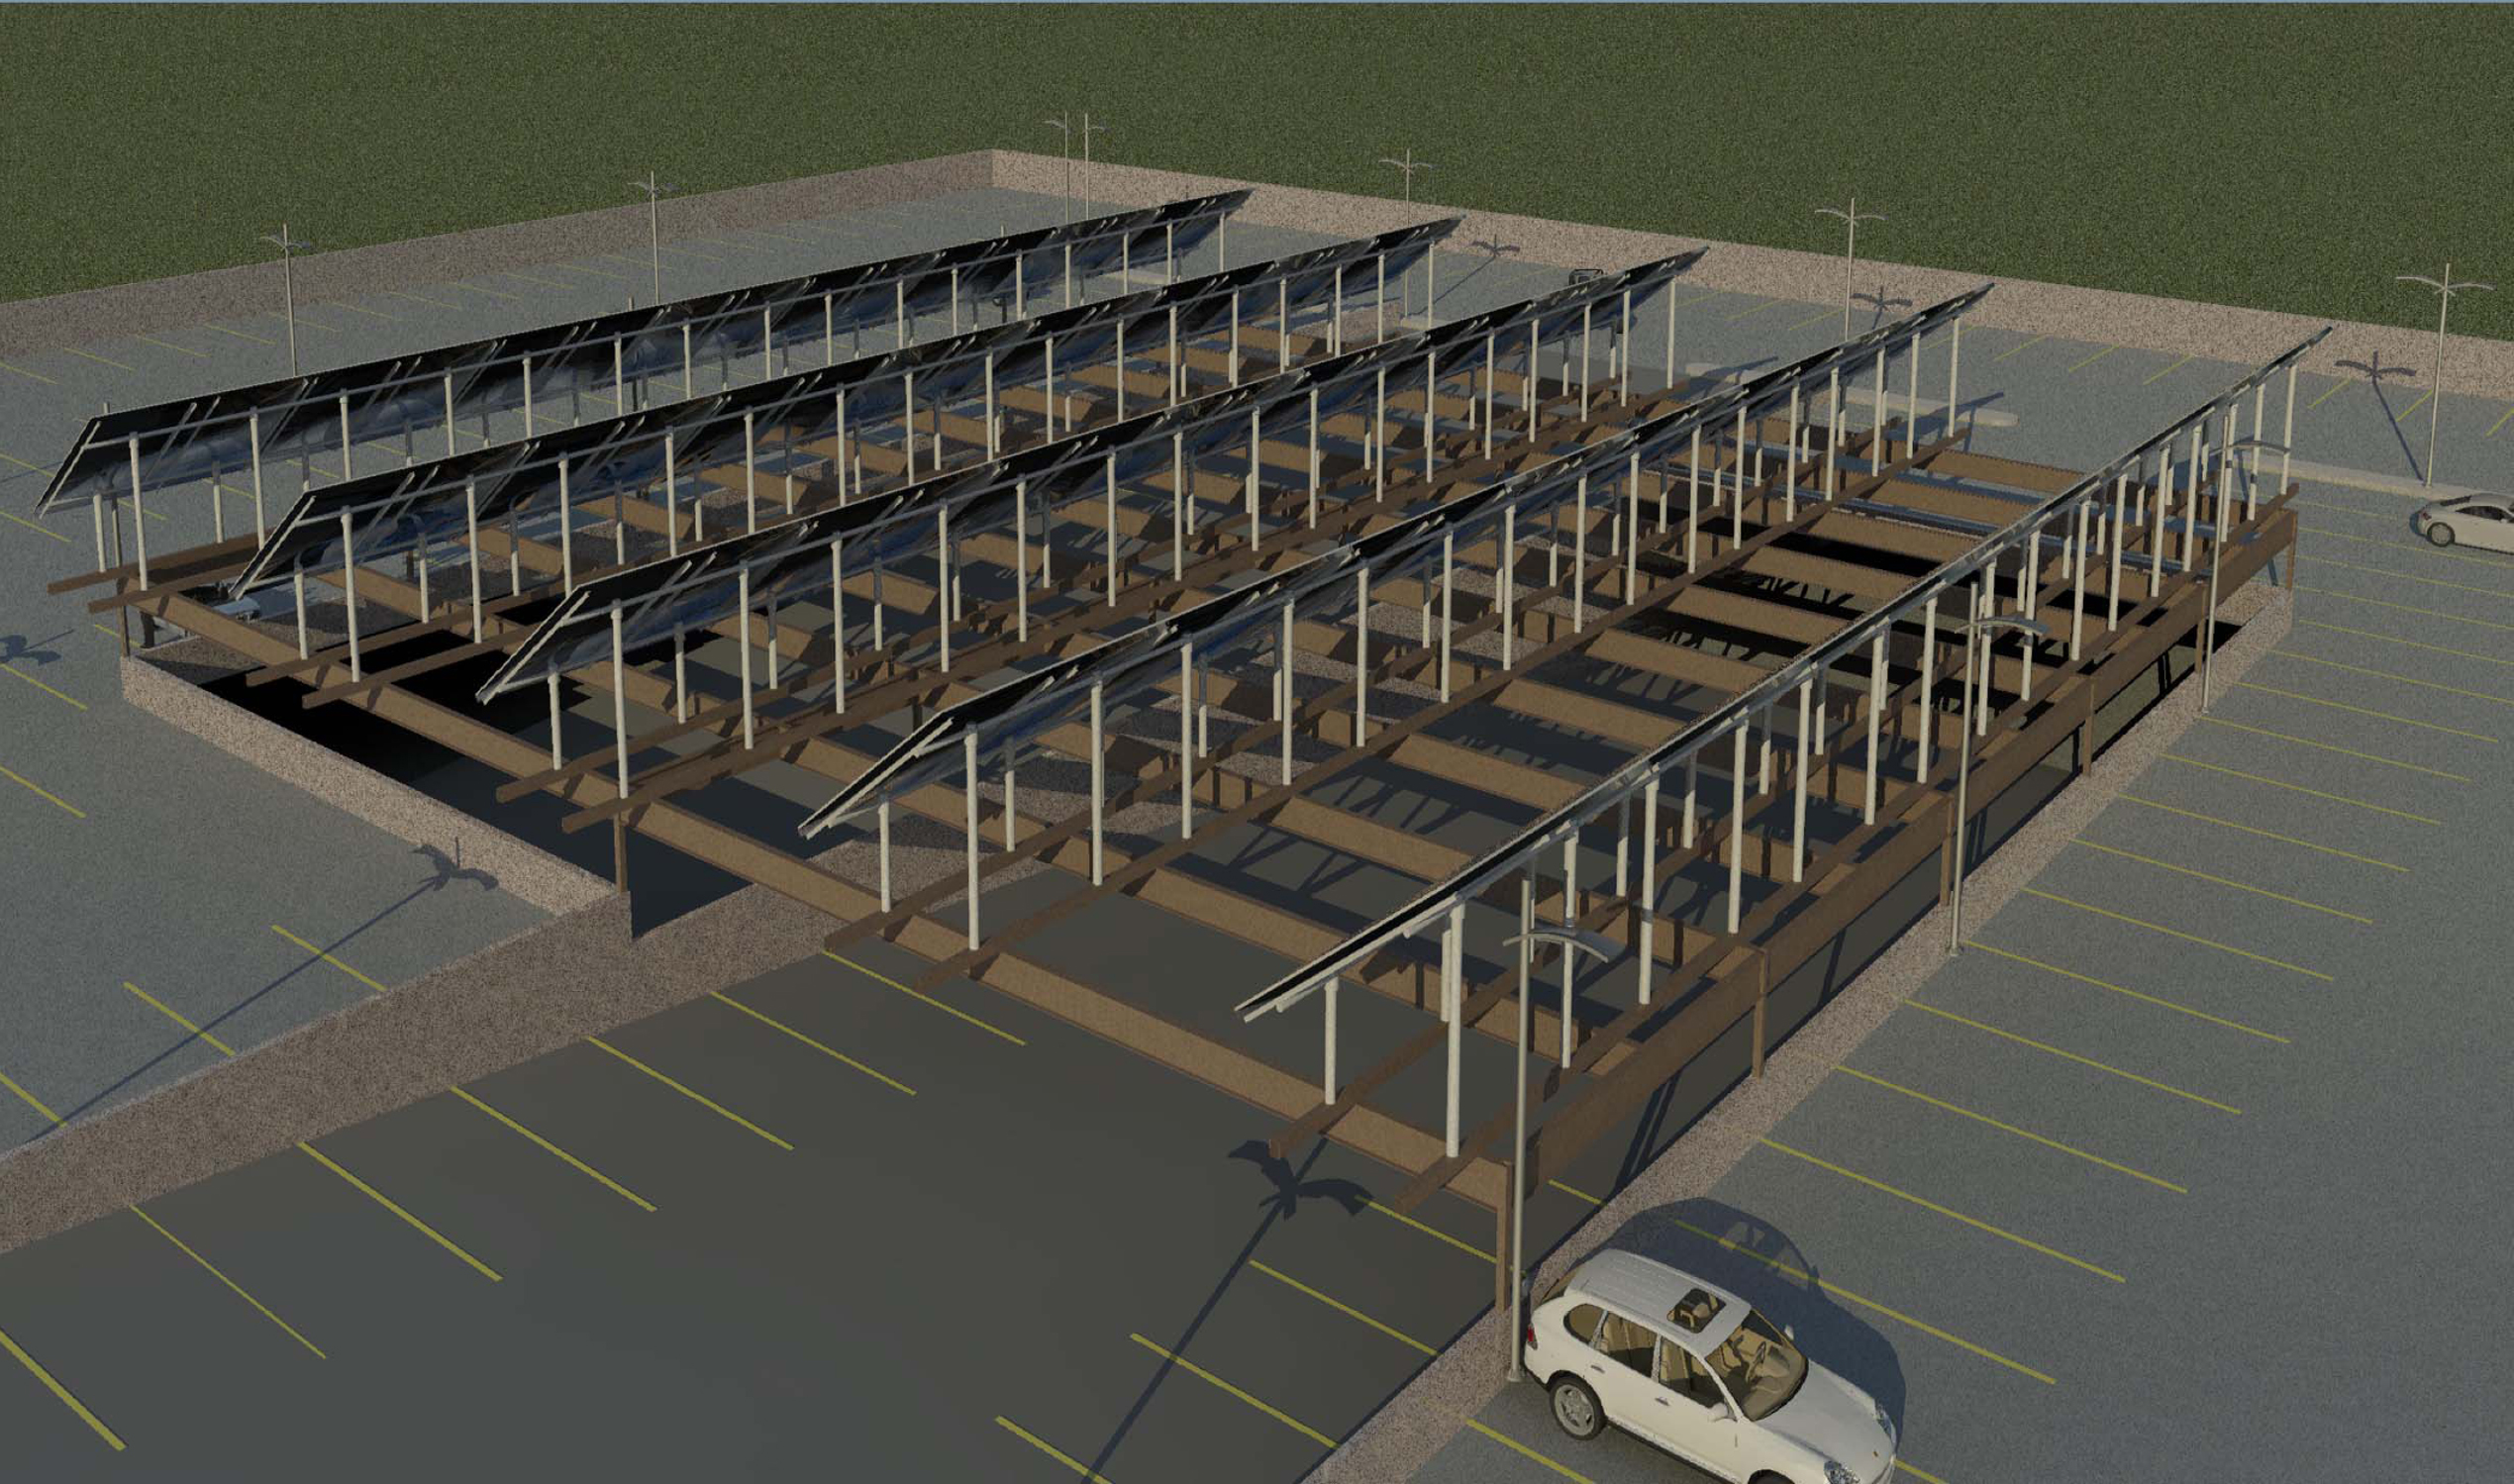 Architectural rendering of the parking deck's roof top solar panel field